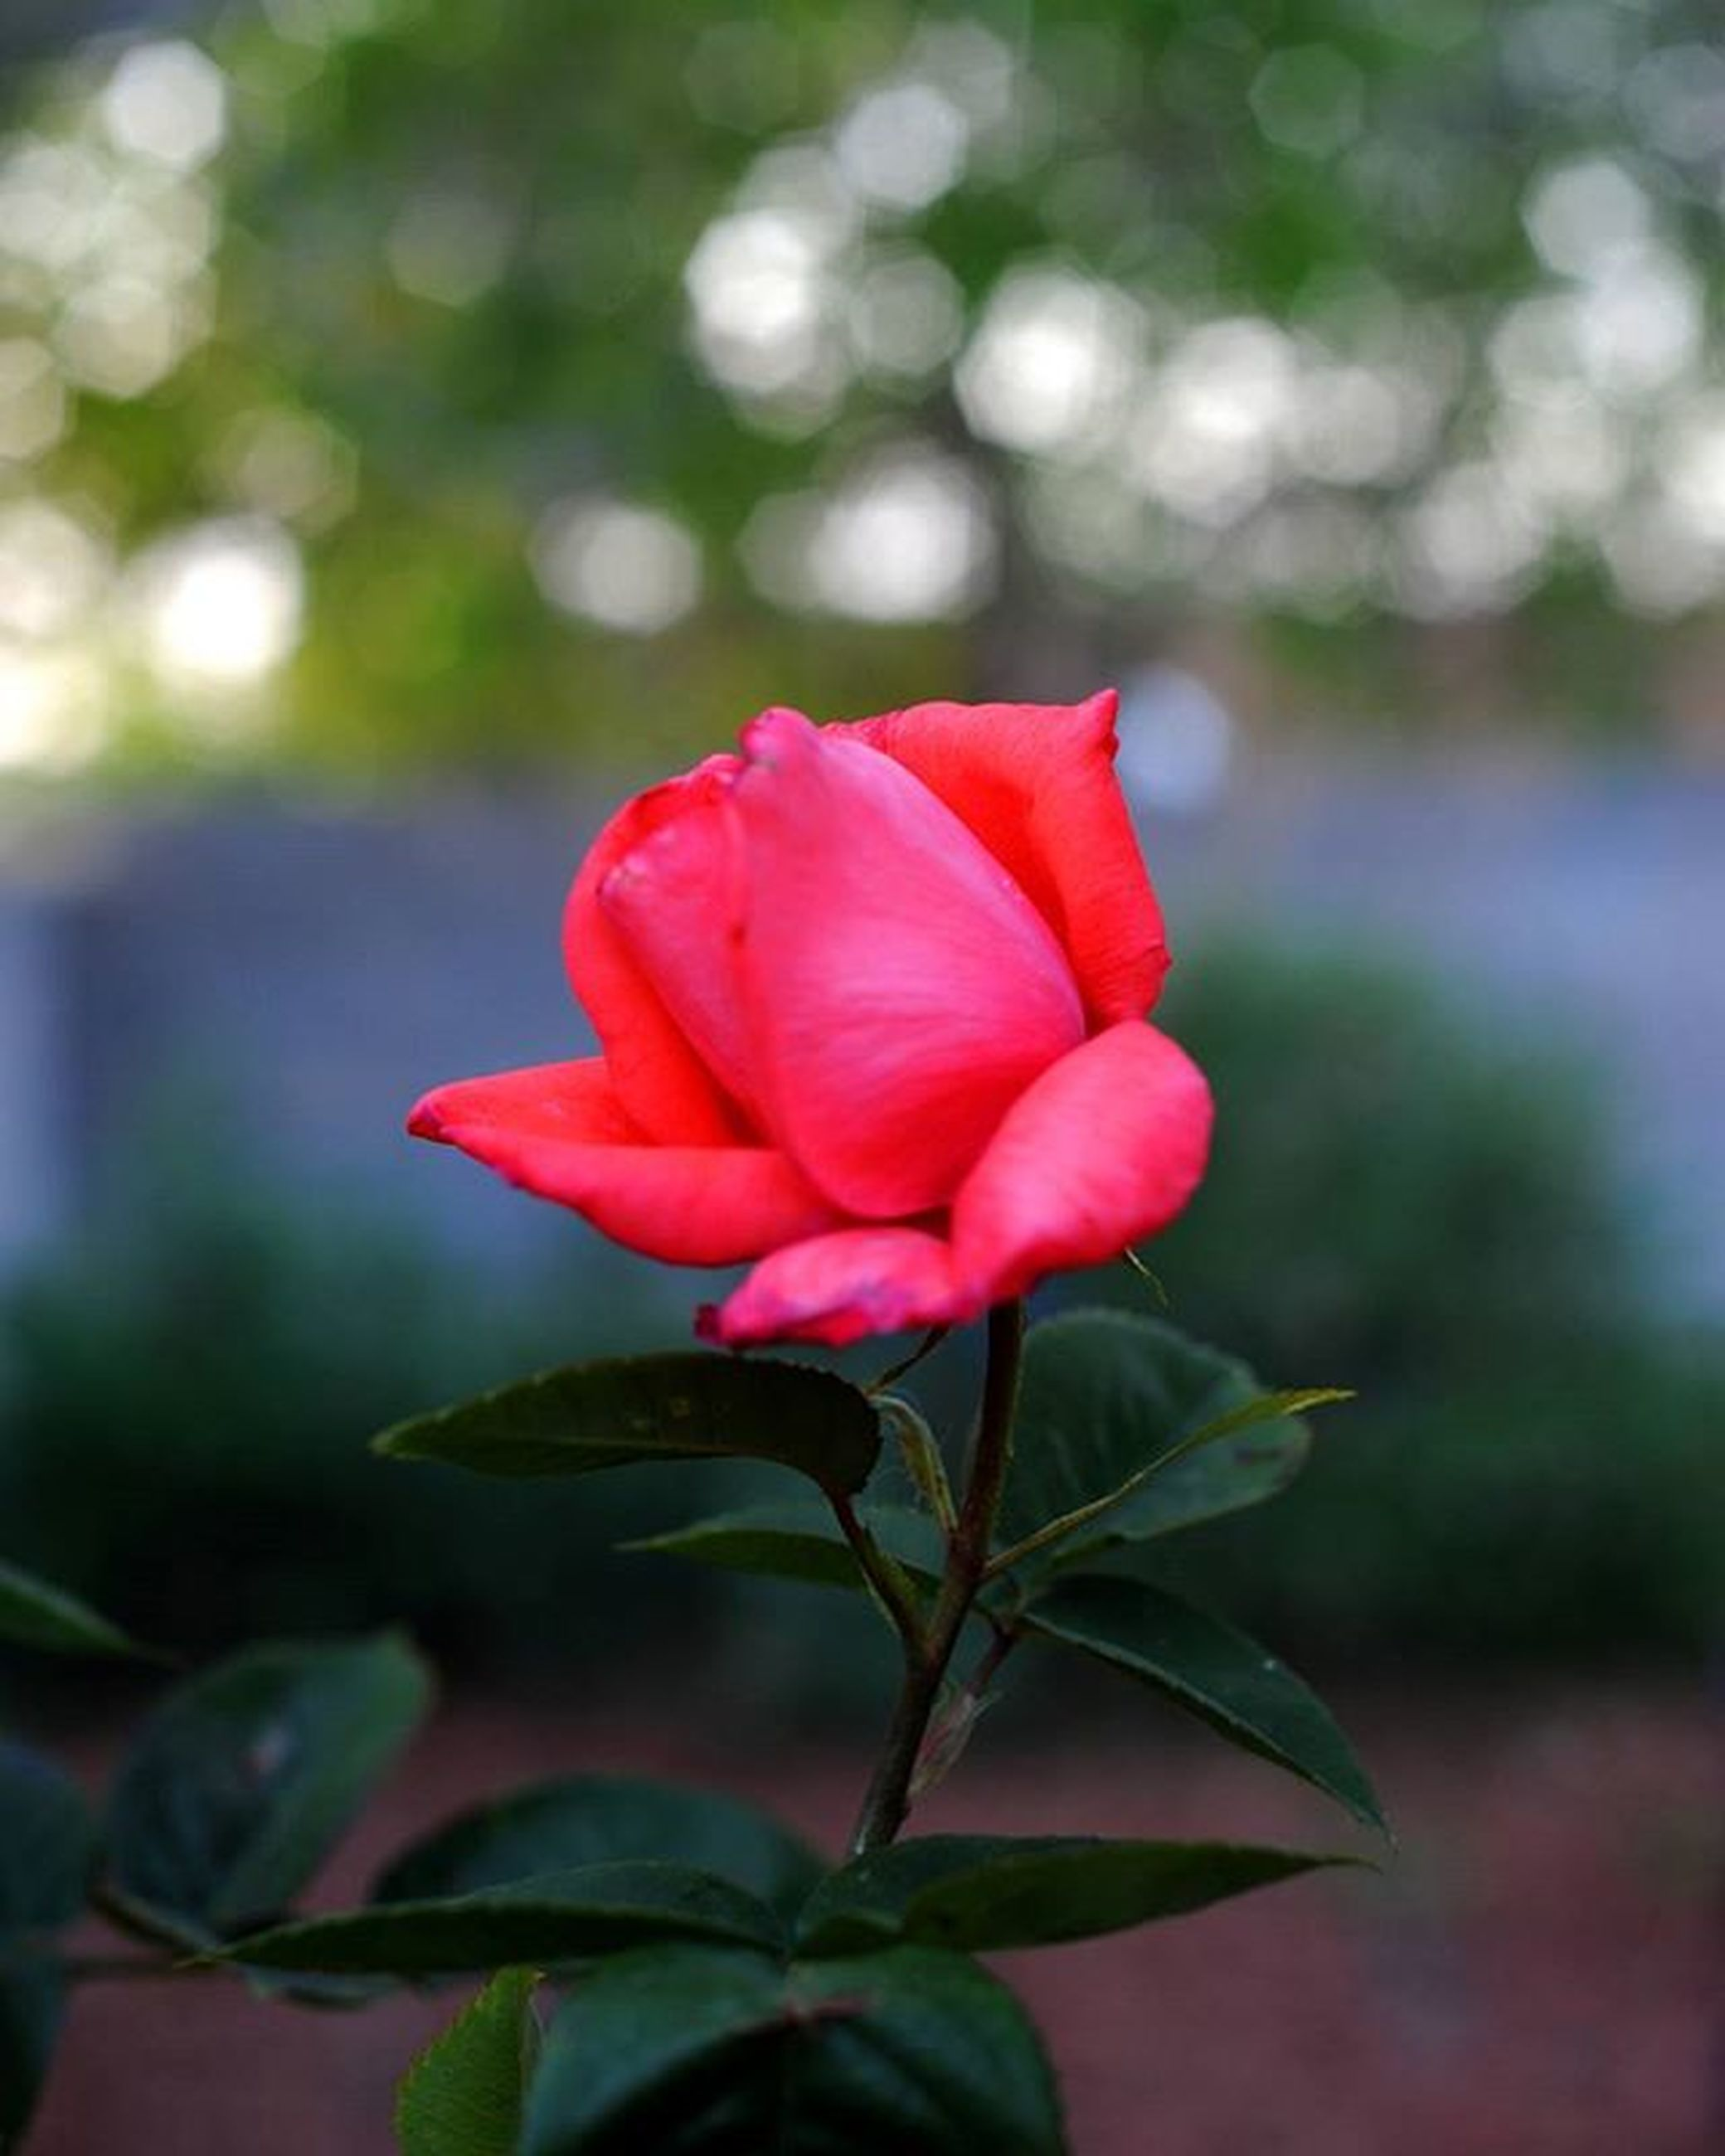 flower, petal, freshness, flower head, fragility, growth, focus on foreground, beauty in nature, close-up, leaf, plant, blooming, nature, red, rose - flower, pink color, bud, in bloom, stem, blossom, selective focus, day, outdoors, botany, no people, green color, softness